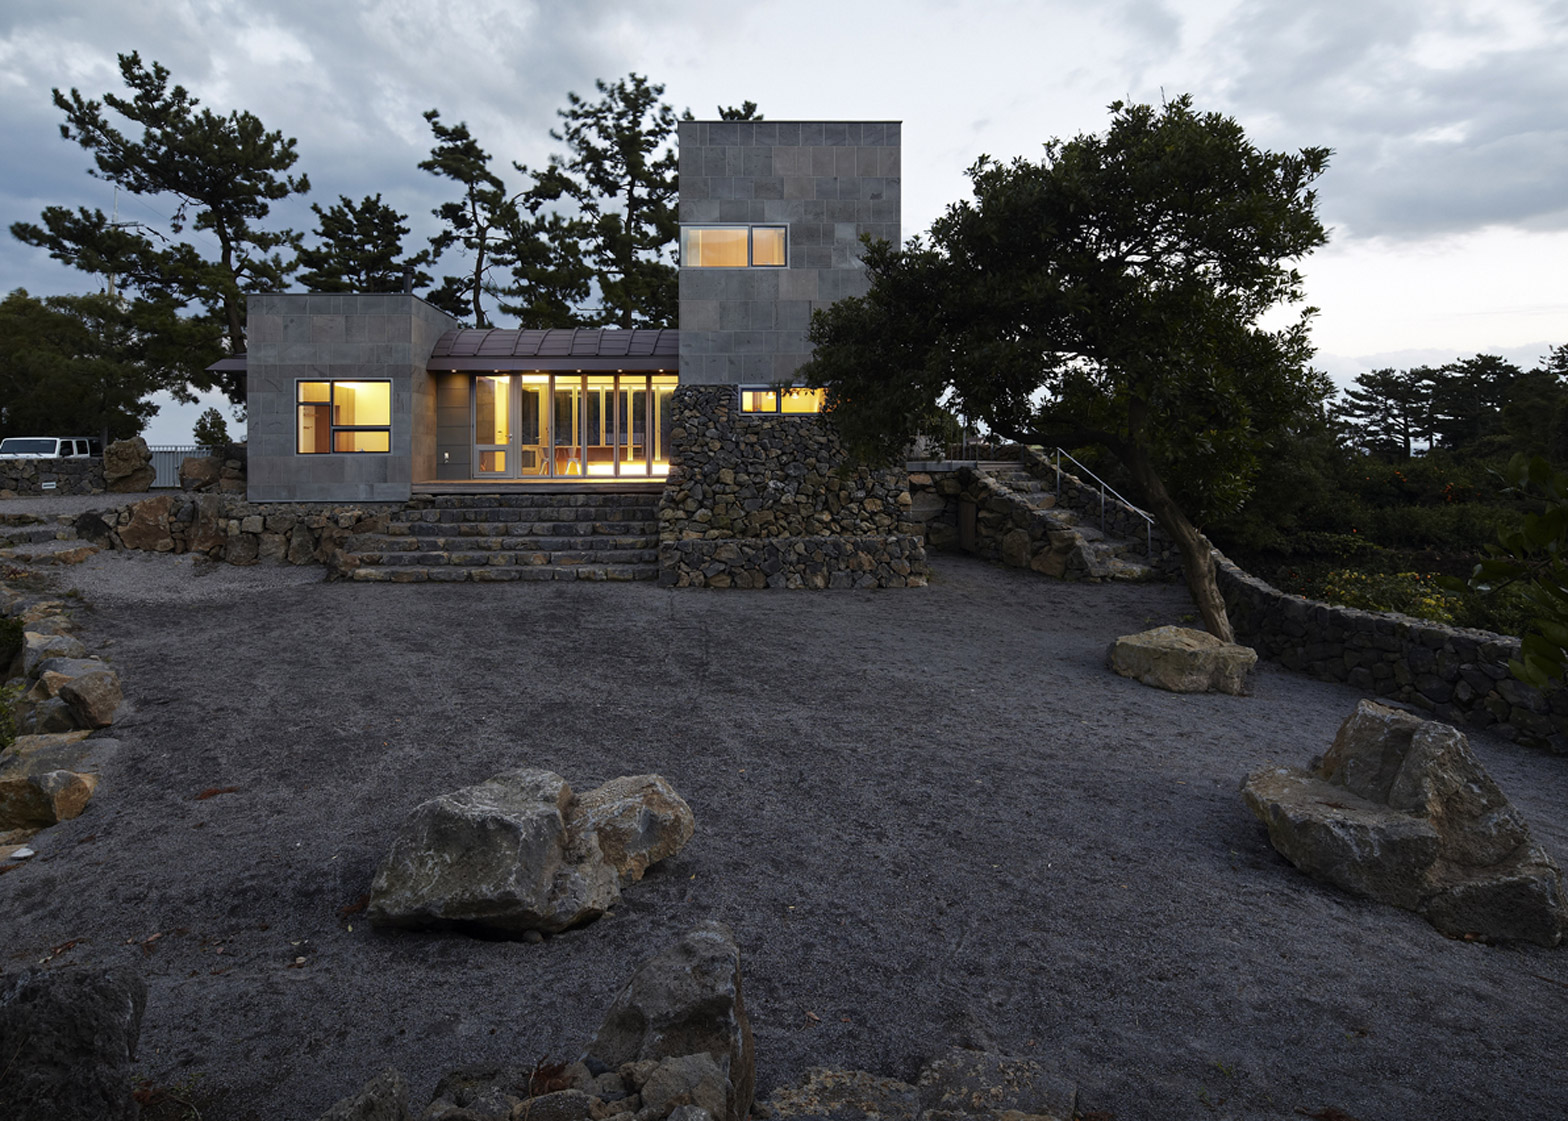 Residence in Bomok by Doojin Hwang architects